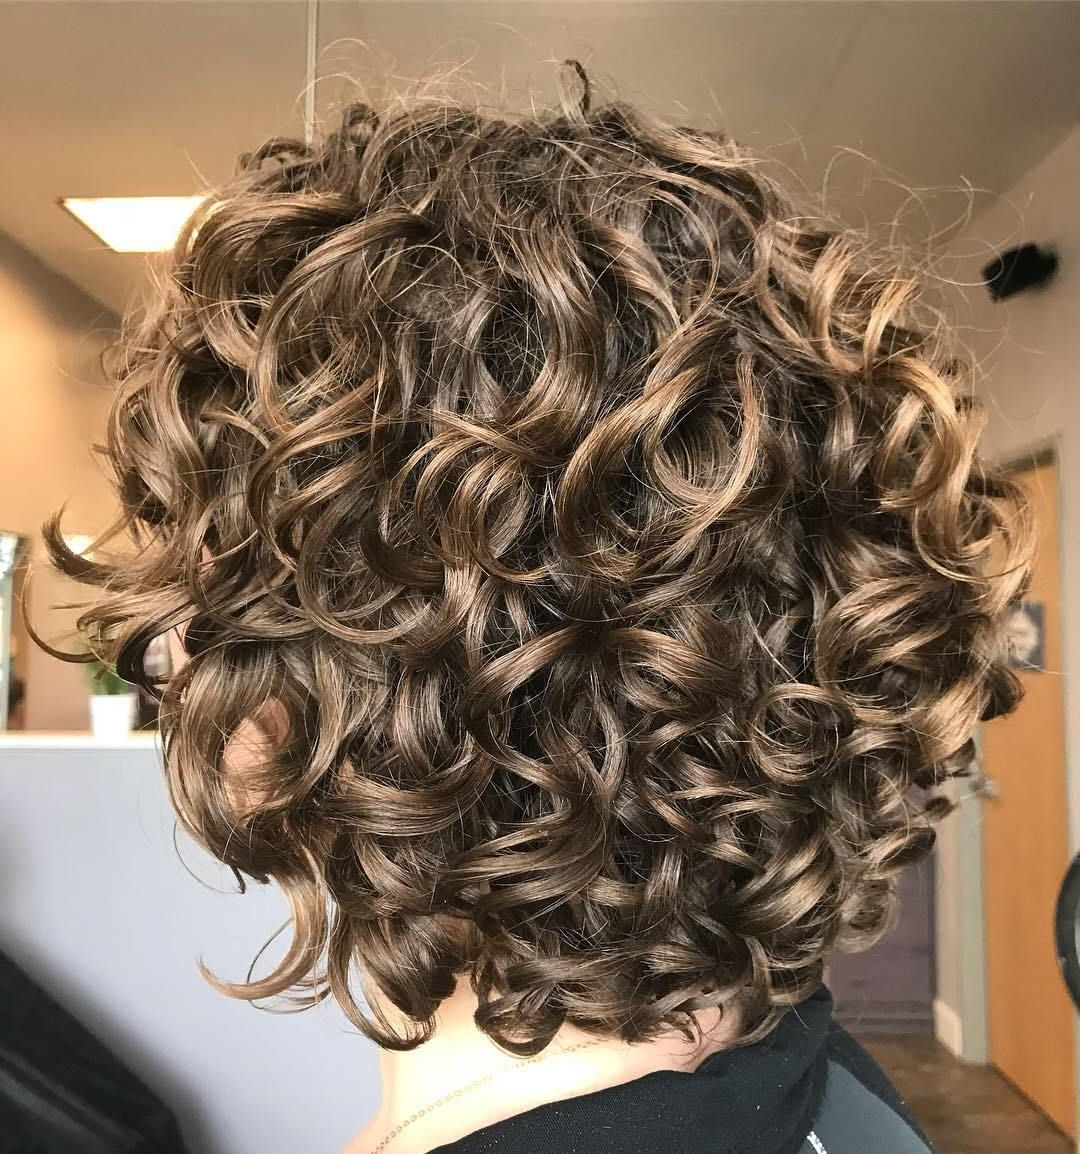 60 Most Delightful Short Wavy Hairstyles In 2018 | Hair, Exercise With Dark Blonde Short Curly Hairstyles (Gallery 4 of 25)